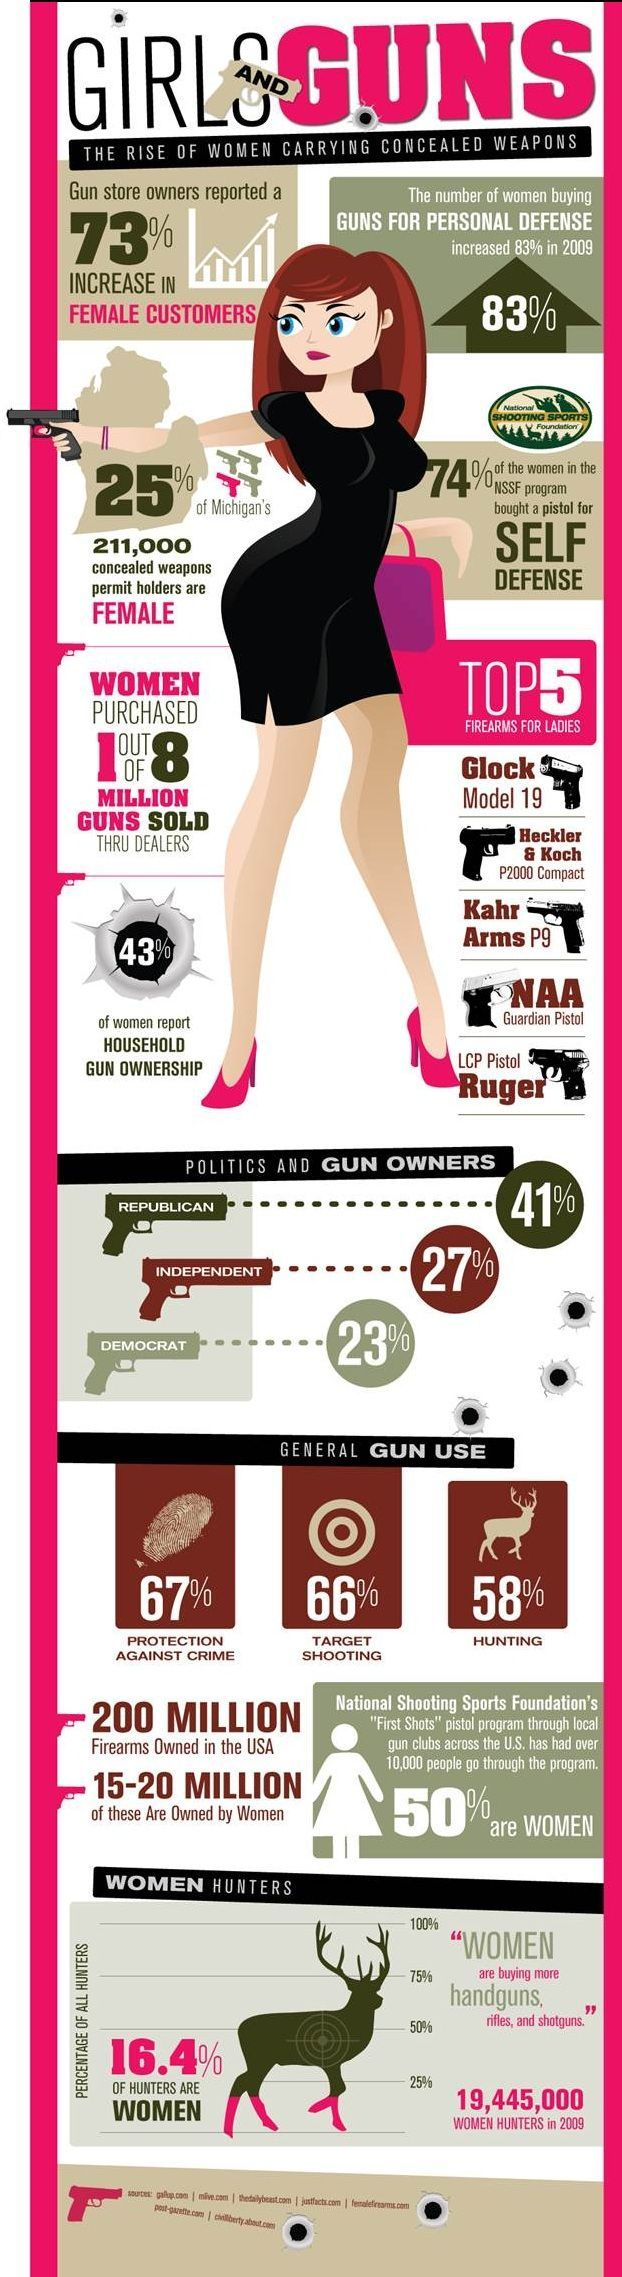 Women gun owners going up, ccw permits for ladies going up, women and guns go hand in hand!  #ccw #gunowners